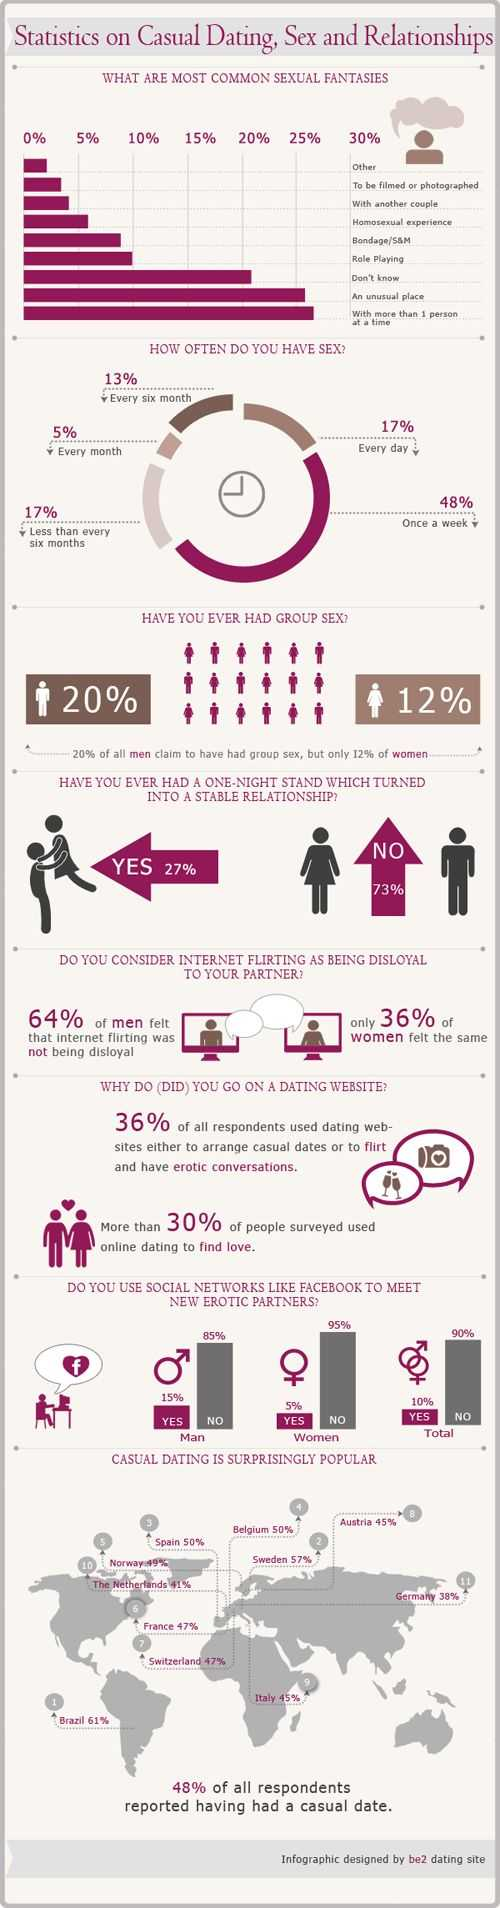 Statistics On Casual Dating, Sex, And Relationships